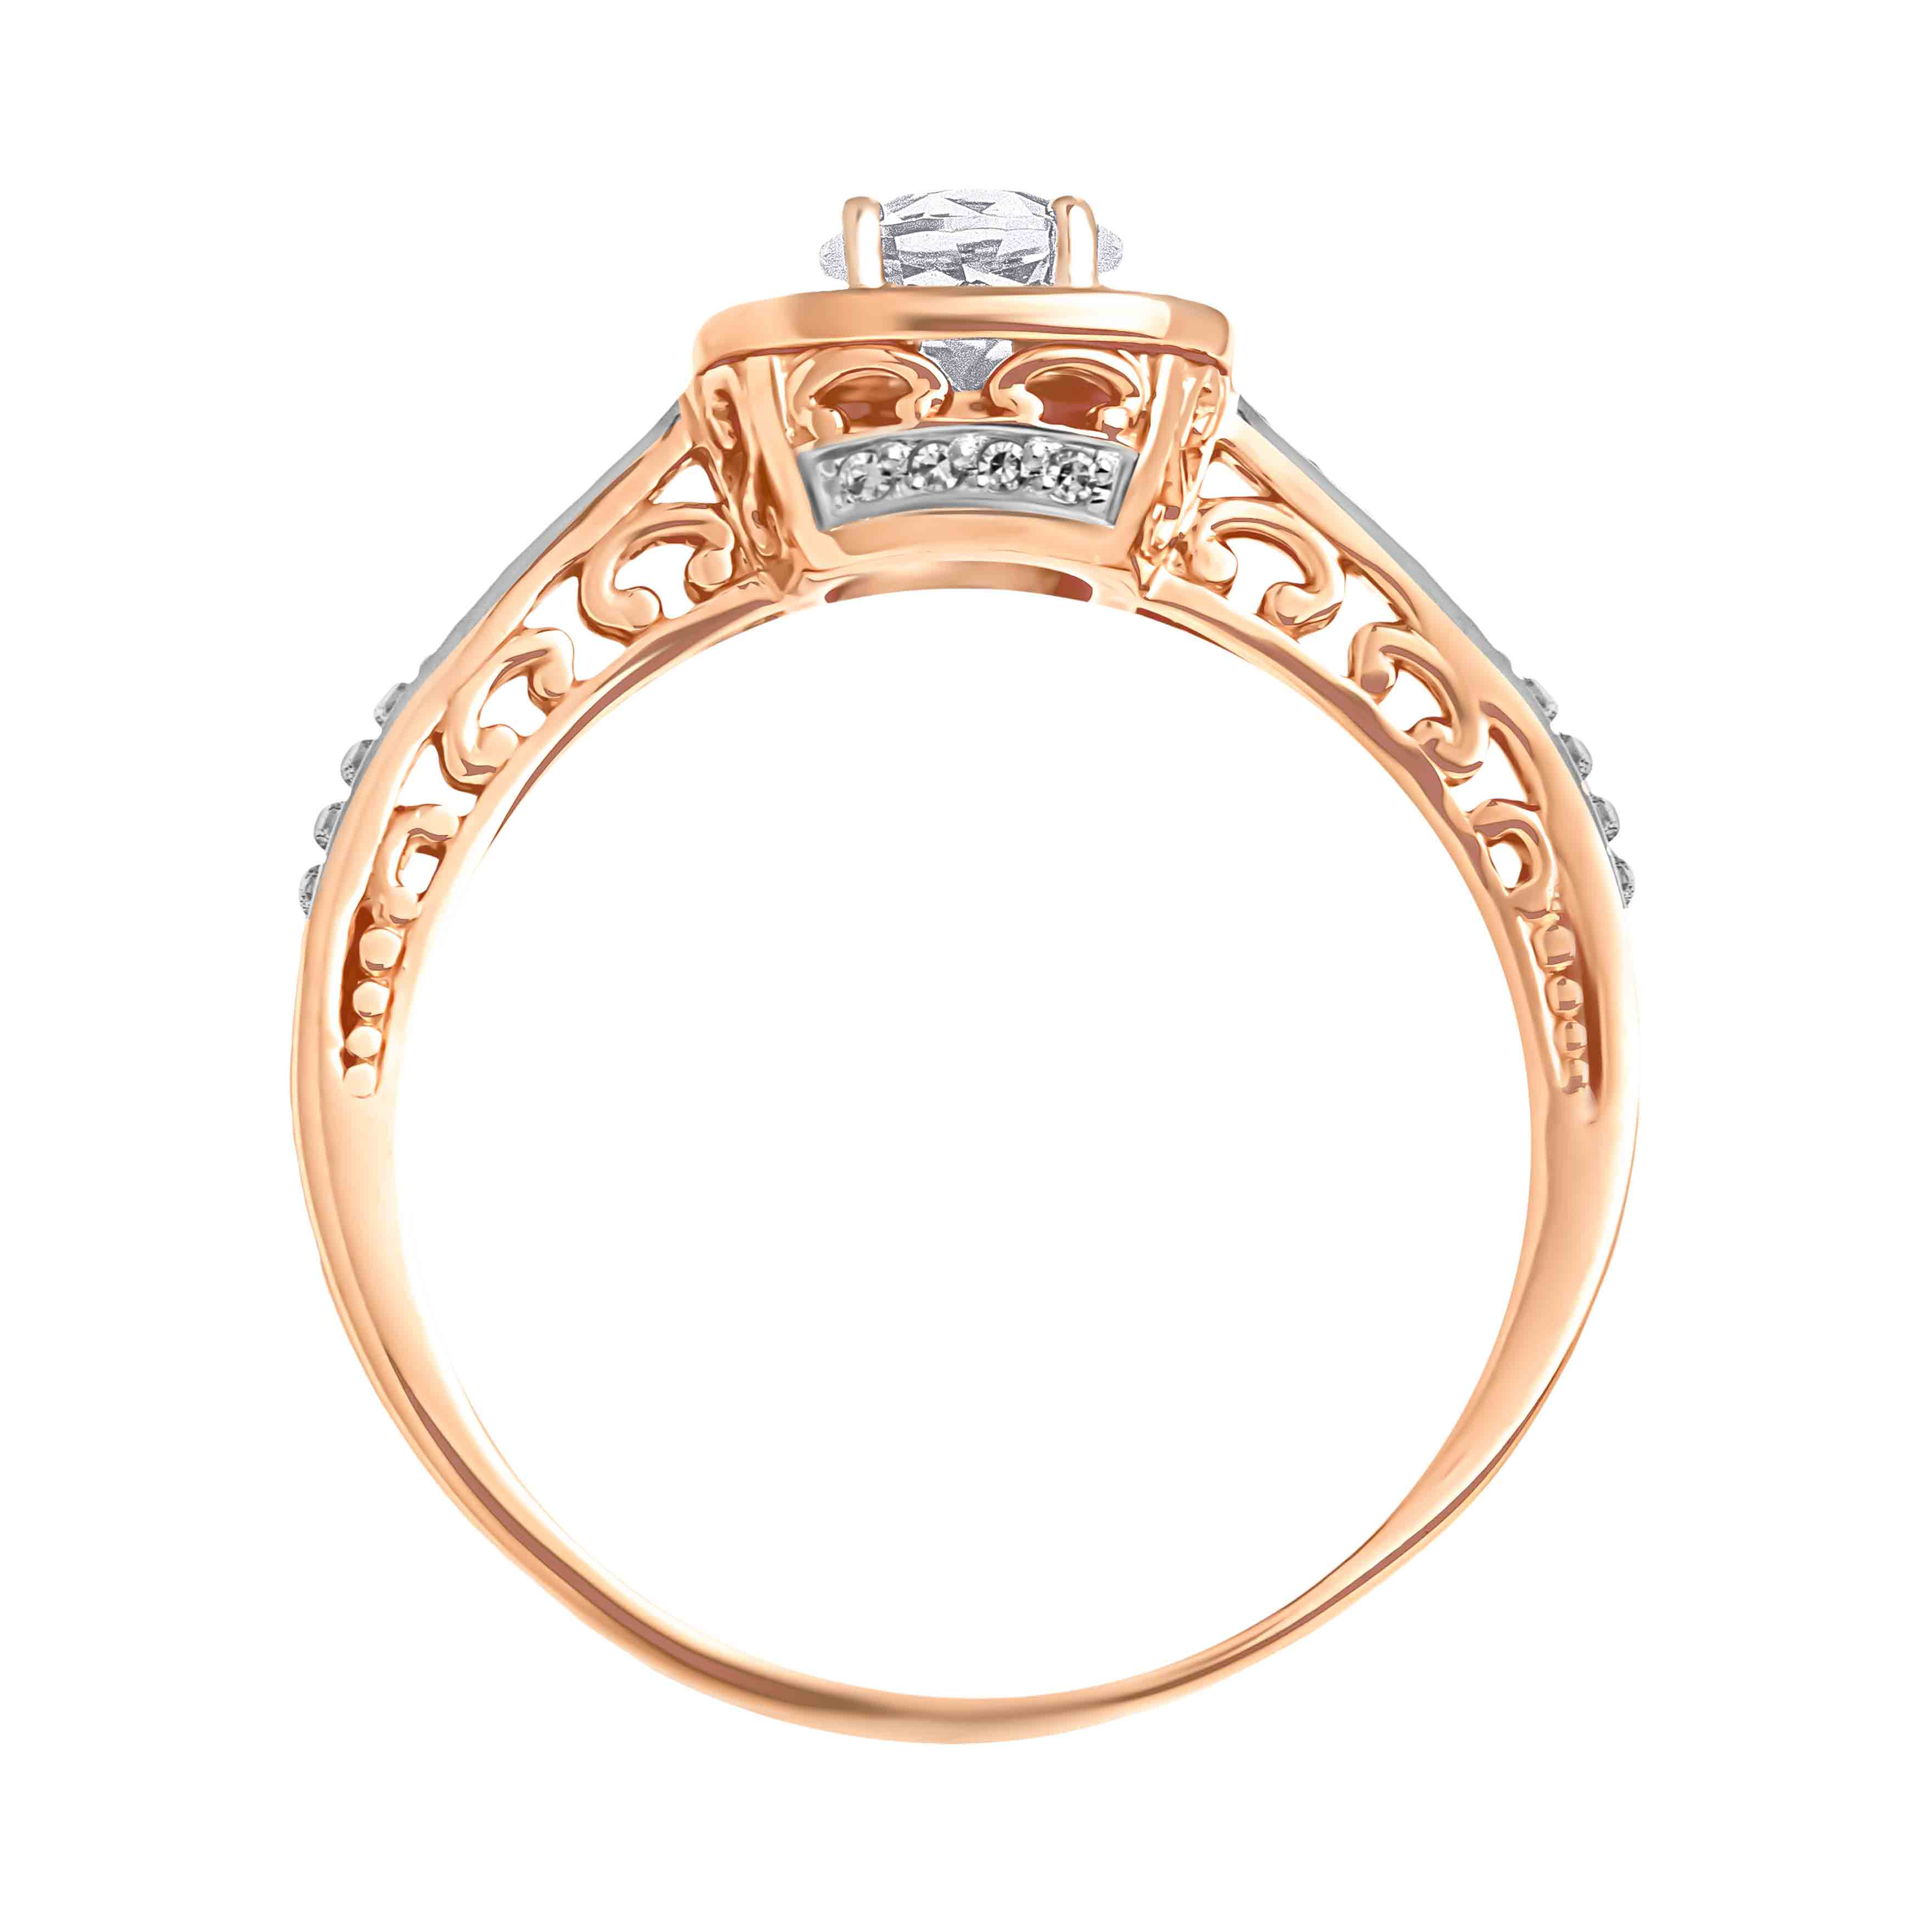 14kt Rose Gold Scrollwork Ring with Swarovski Topaz and Diamonds. View 3